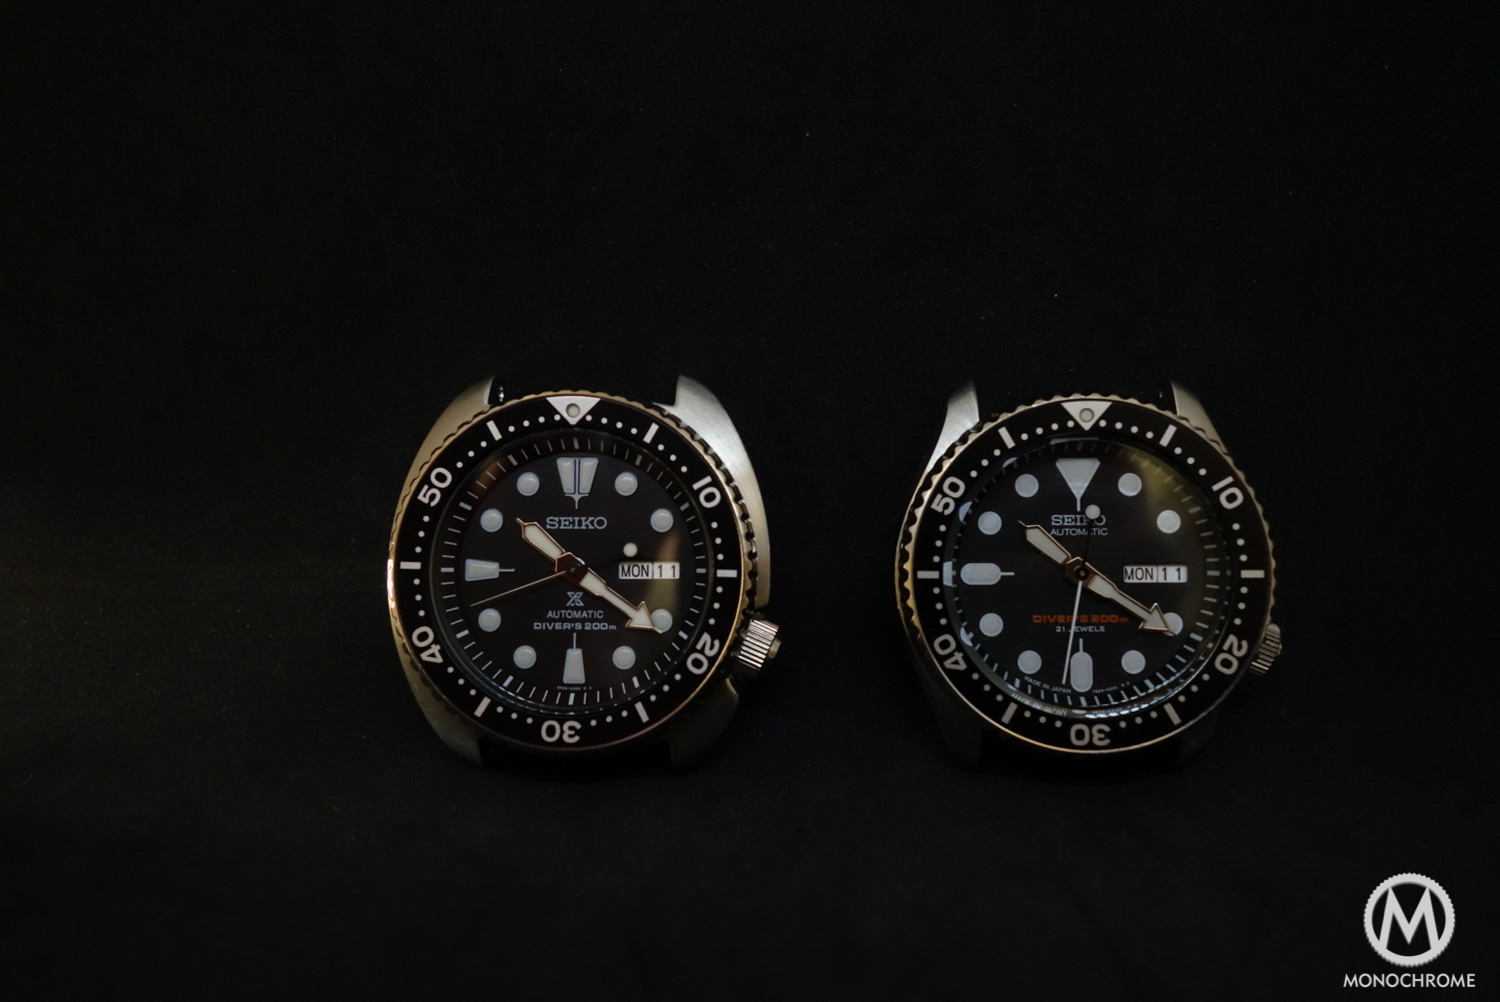 Hands On Review The New Seiko Prospex Srp Series Ref